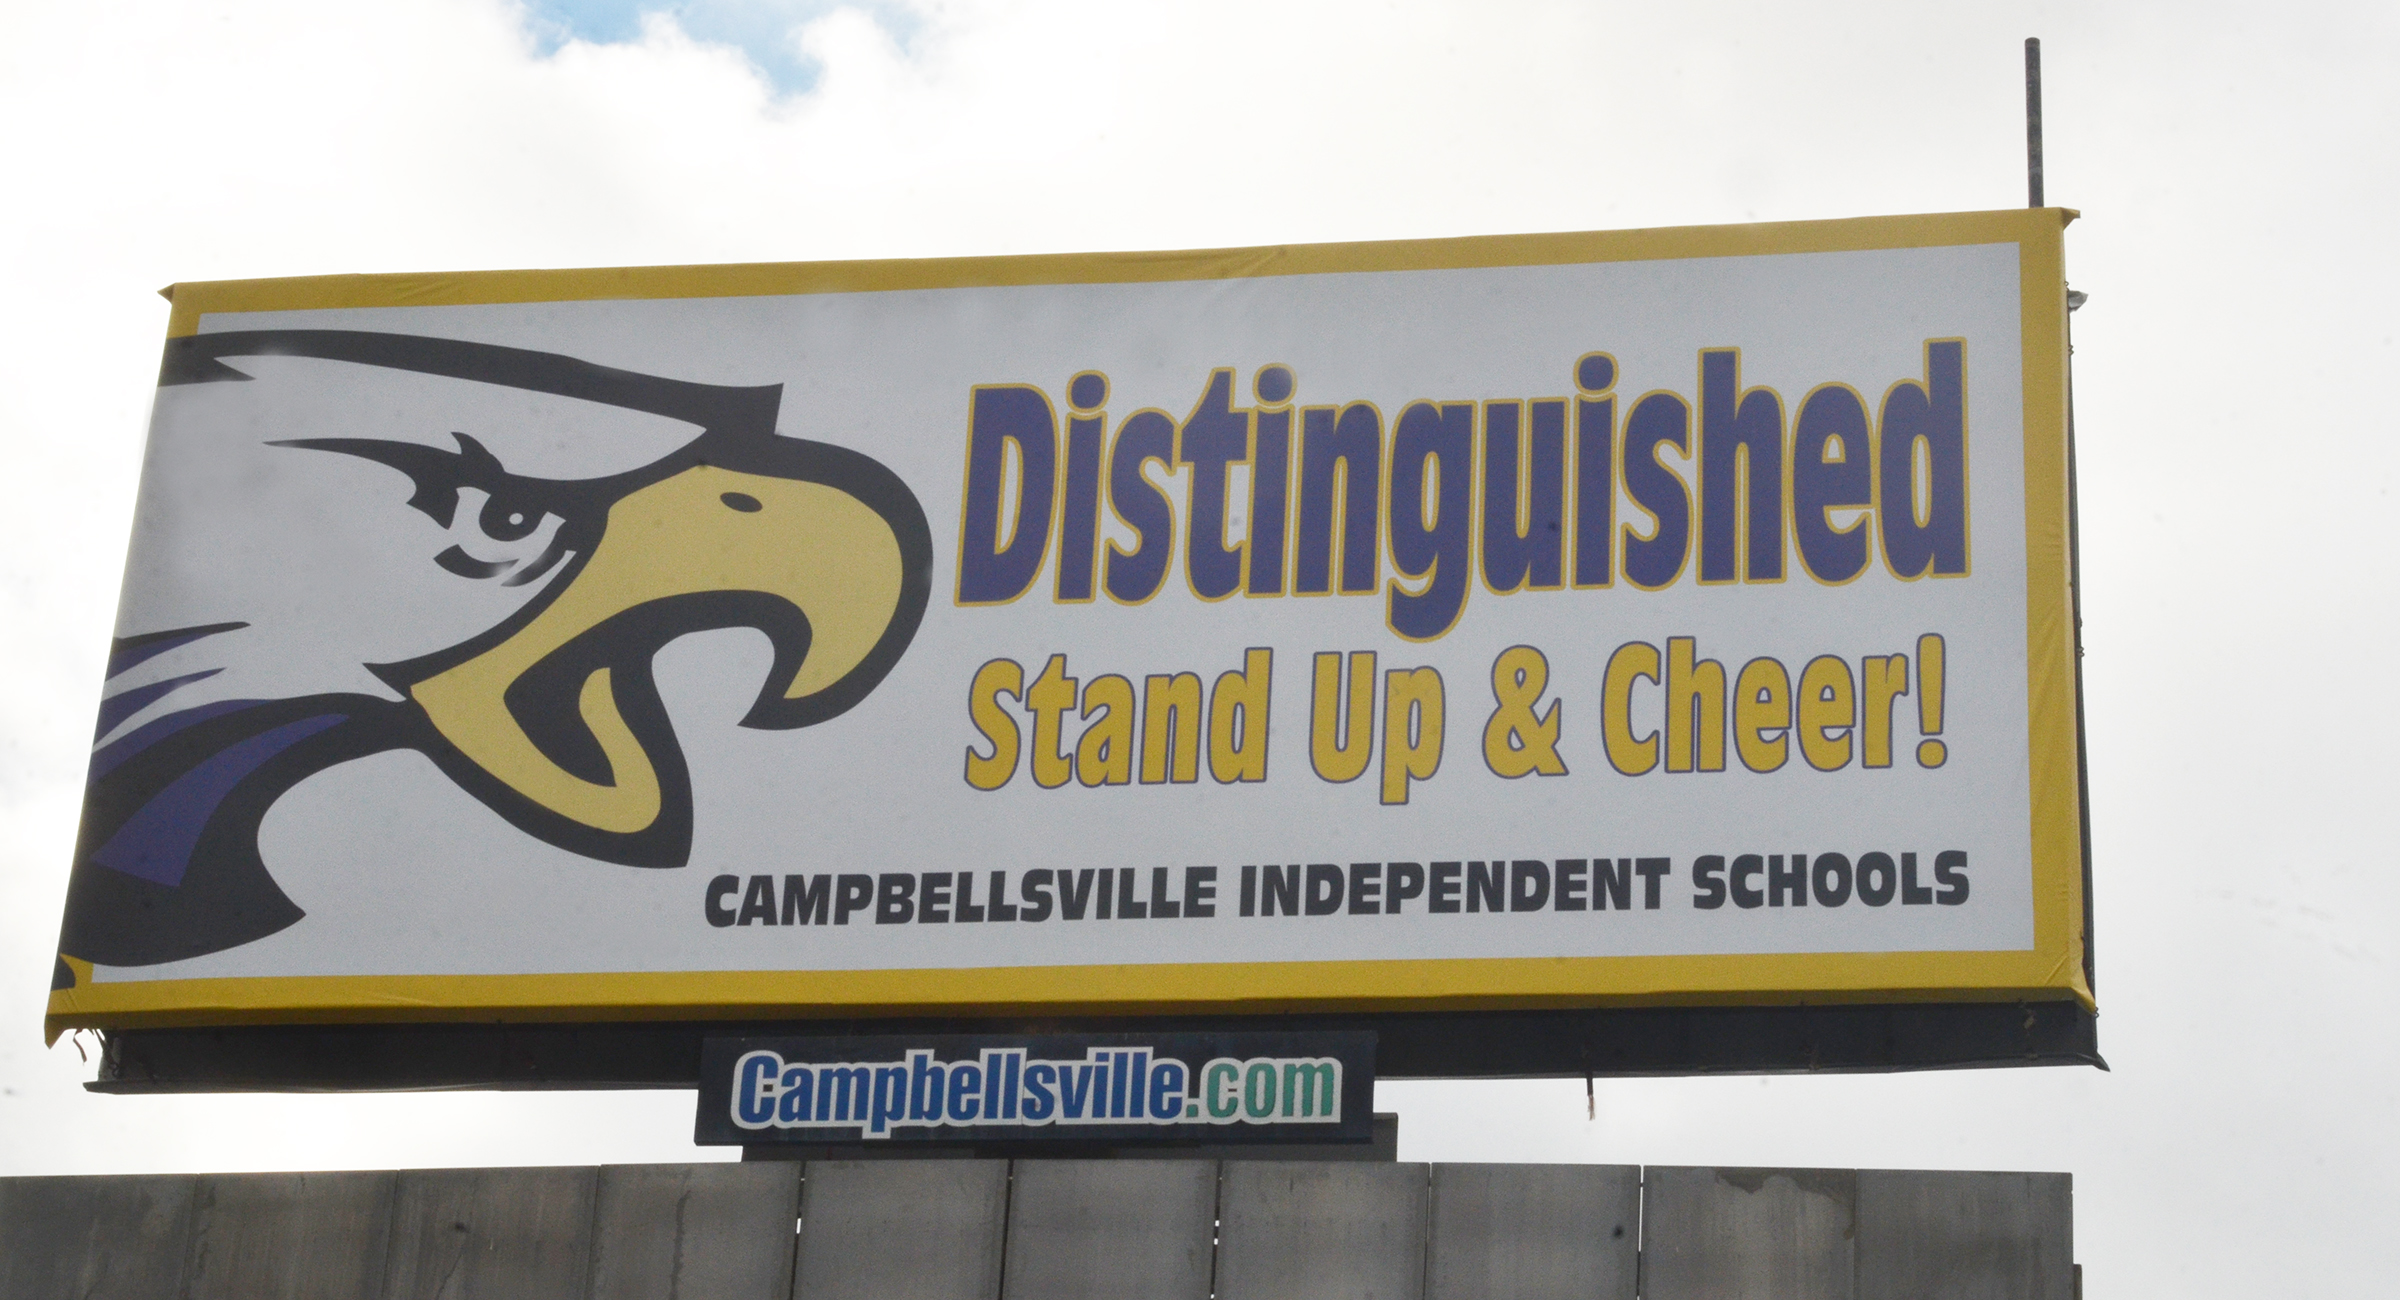 Campbellsville Independent Schools has leased billboard space to tell the public about its outstanding state test scores. The billboard is located across from McDonald's restaurant, and above the Home Town Wireless building.